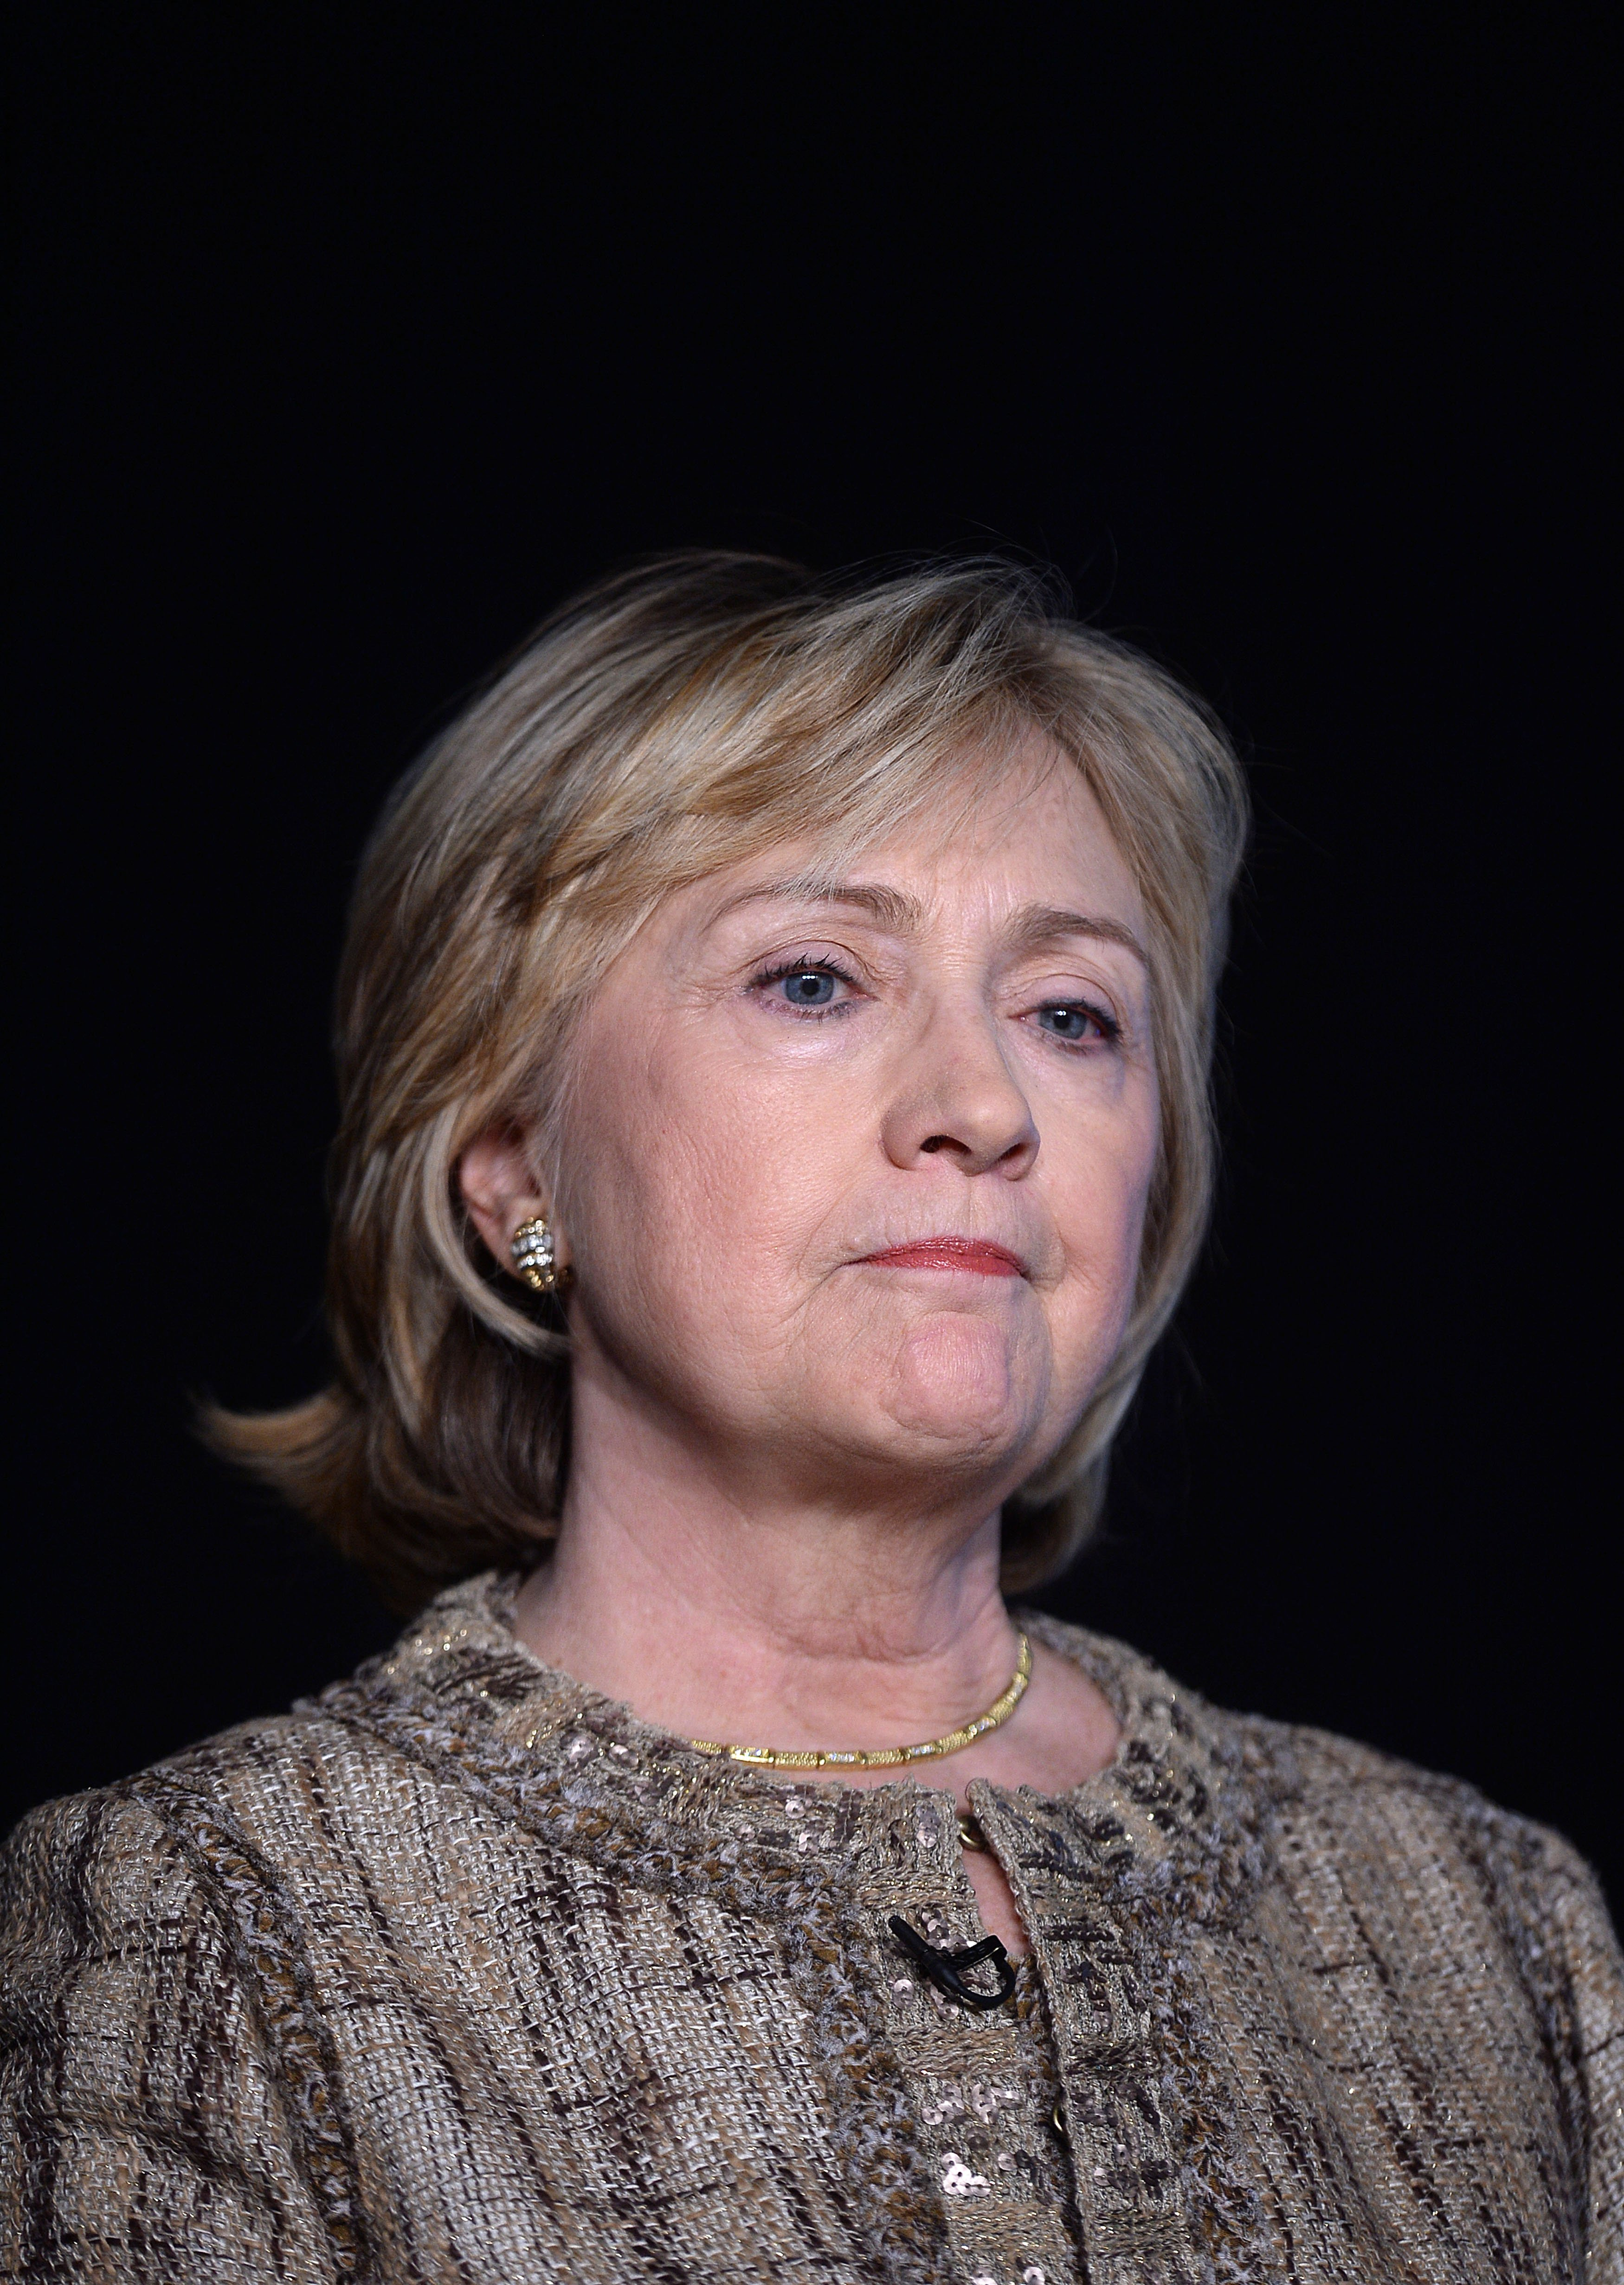 Former Secretary of State Hillary Clinton speaks at the New America Foundation (NAF) conference at the Newseum on May 16, 2014 in Washington.